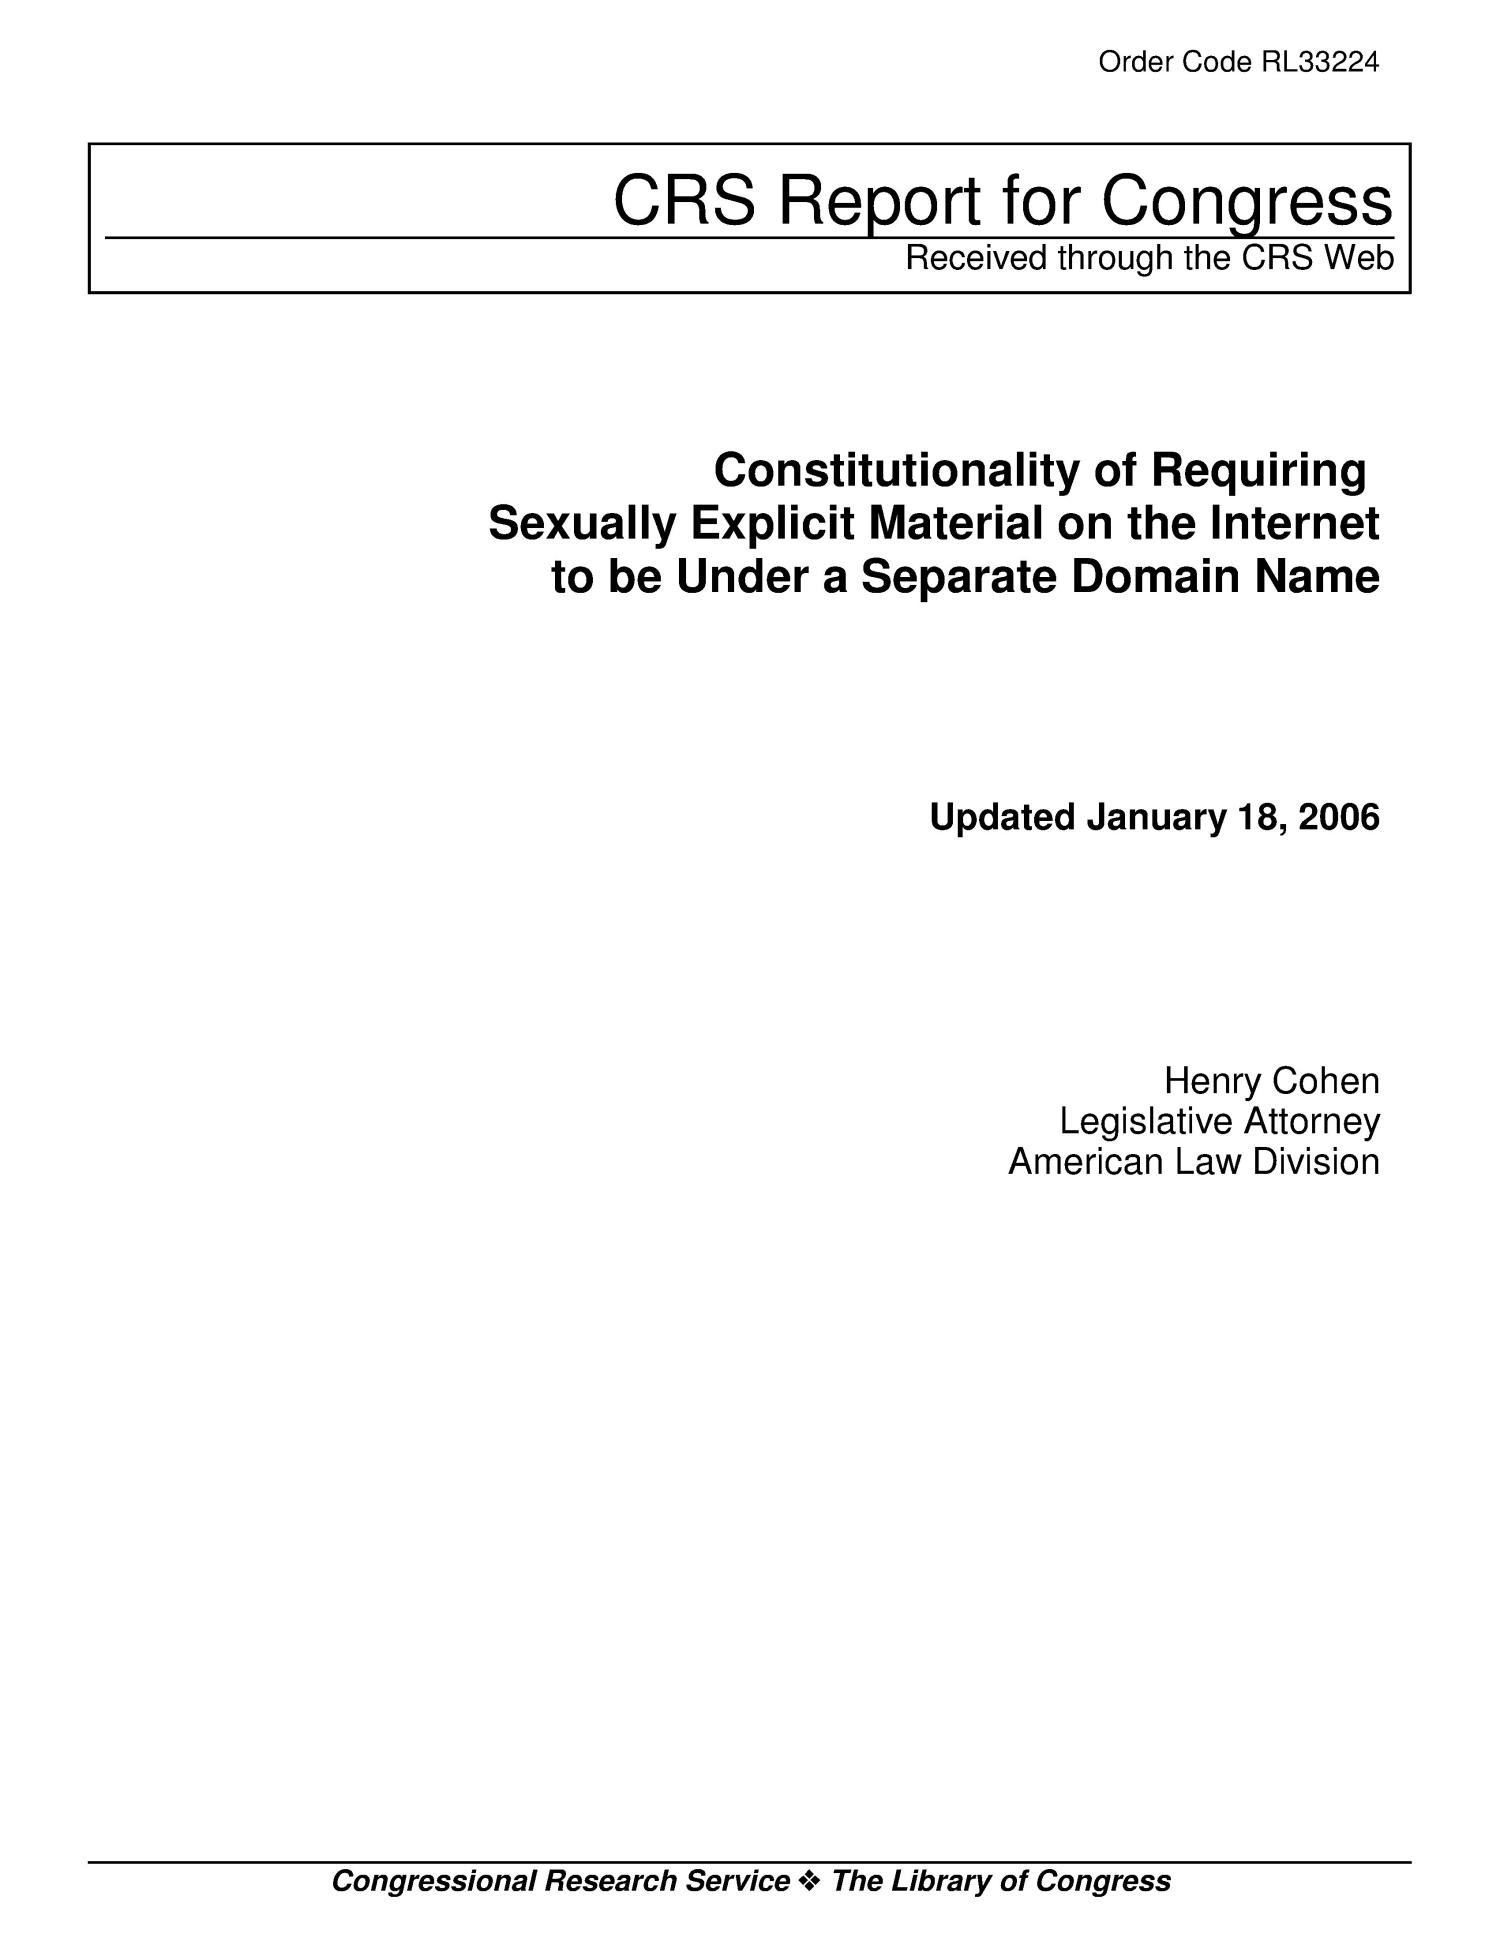 Constitutionality of Requiring Sexually Explicit Material on the Internet to be Under a Separate Domain Name                                                                                                      [Sequence #]: 1 of 11